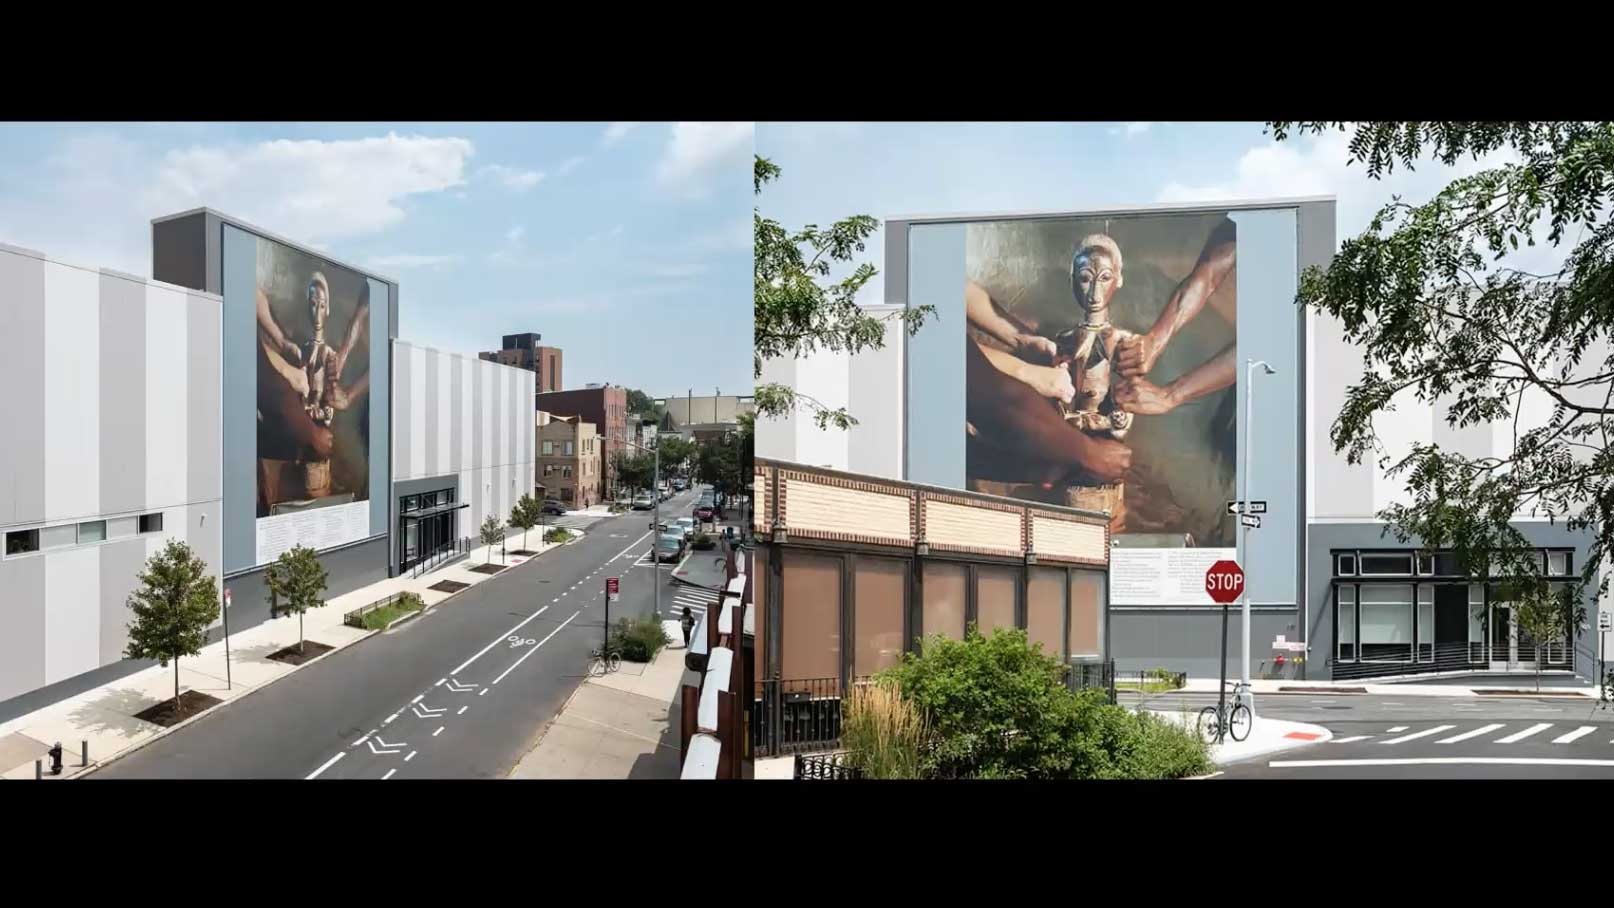 photo of an African idol as poster on buildings